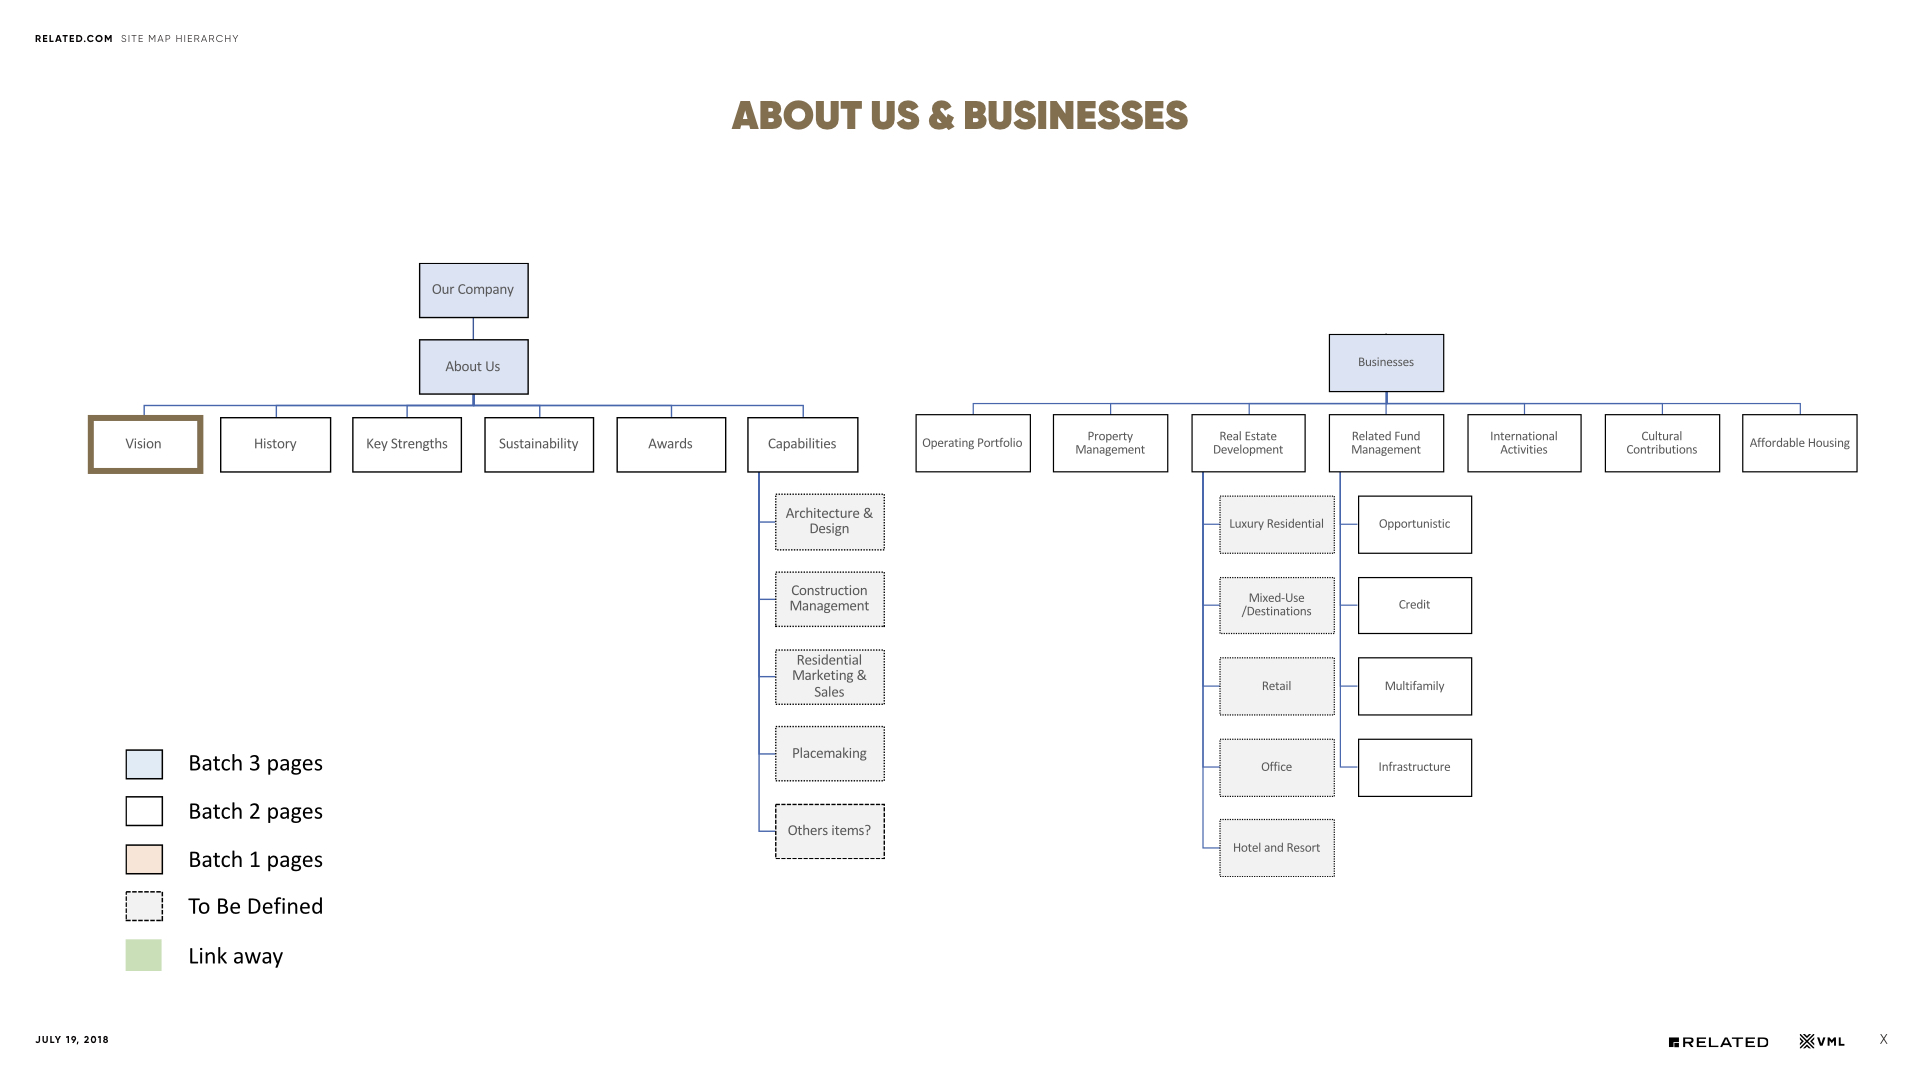 Related.com-Site-Map-Hierarchy-07192018.004